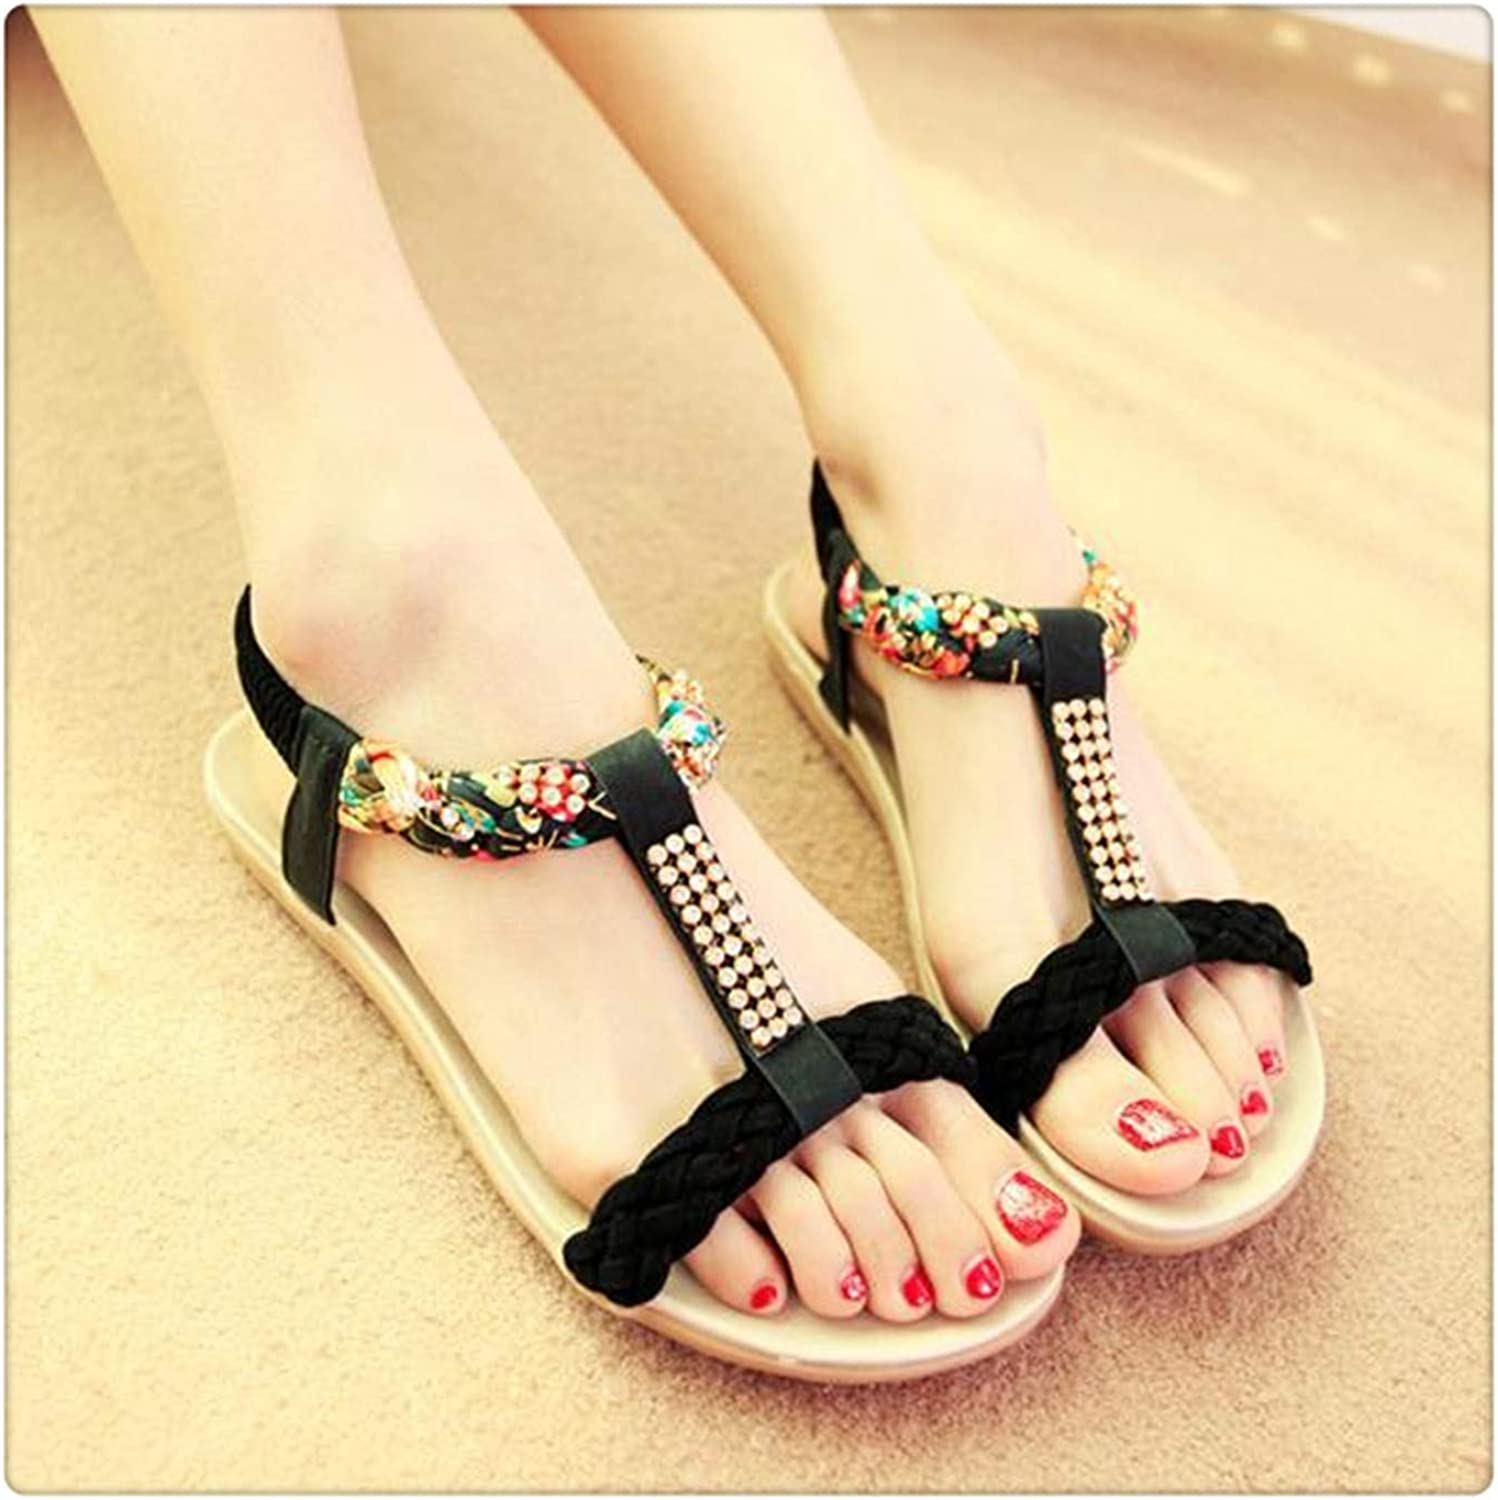 Msanlixian Summer Women Bohemia Sandals Women Flats shoes Fashion Beach Gladiator Sandals Women Footwear Ladies Casual shoes New BT565 Black 8